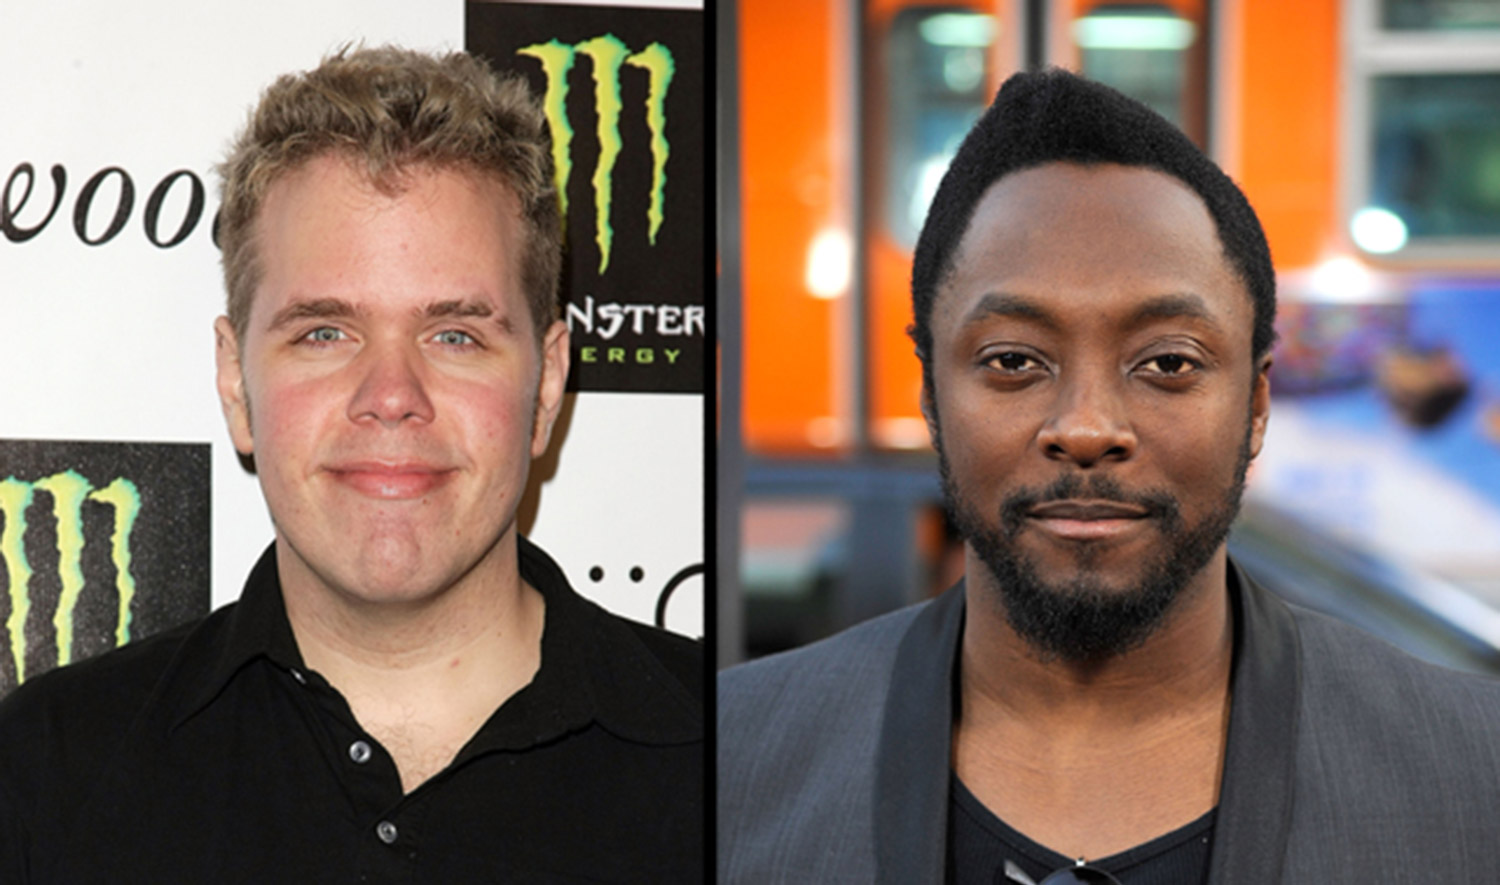 Perez Hilton | Will.I.Am (Getty Images)